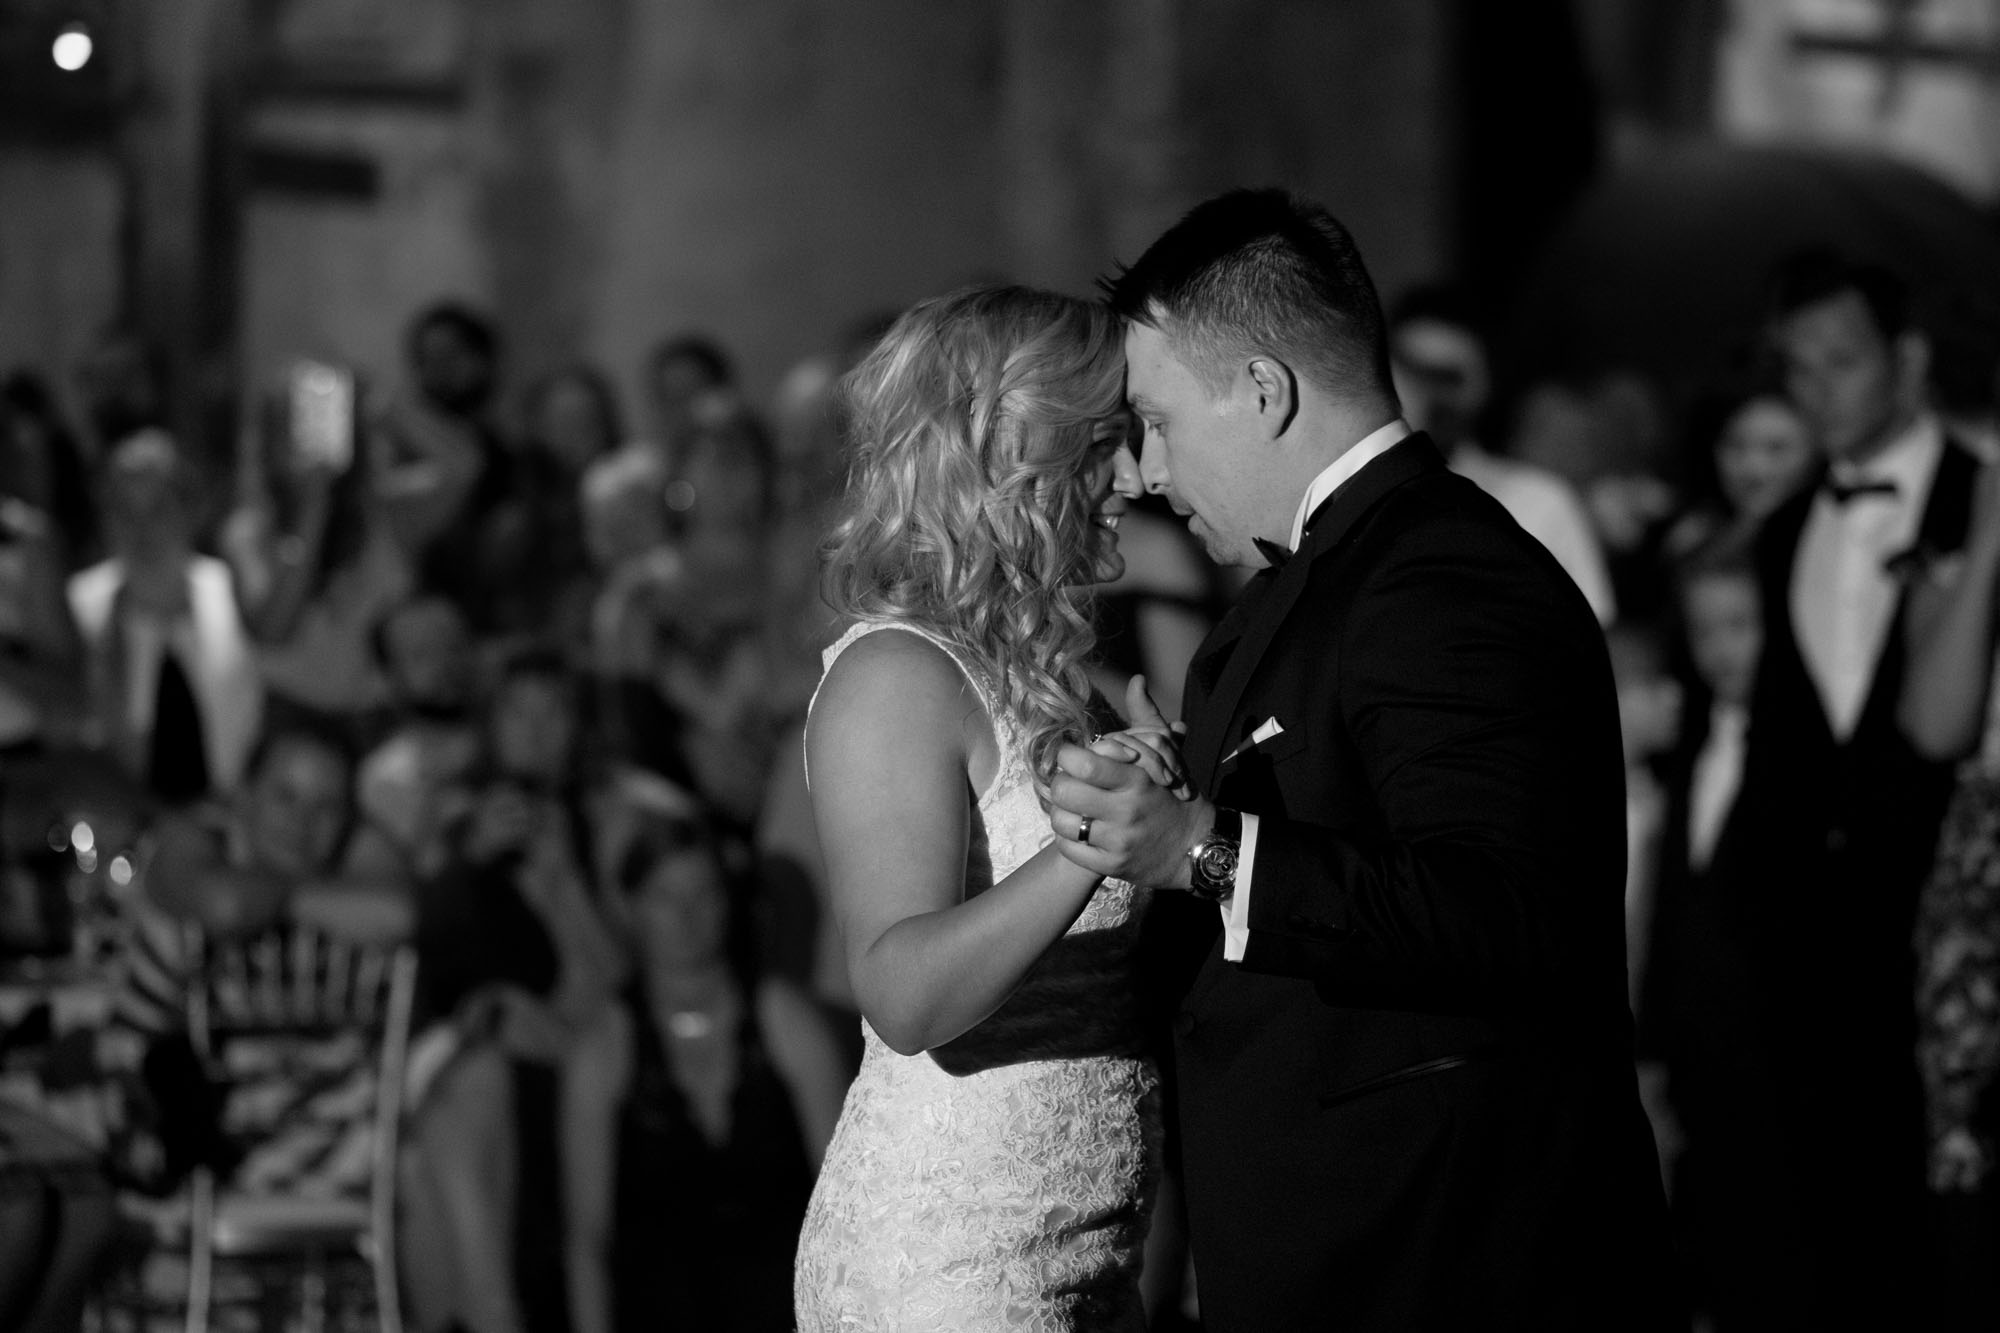 Sarah + Konrad enjoy their first dance as a married couple during their reception at the Fermenting Cellar in Toronto.